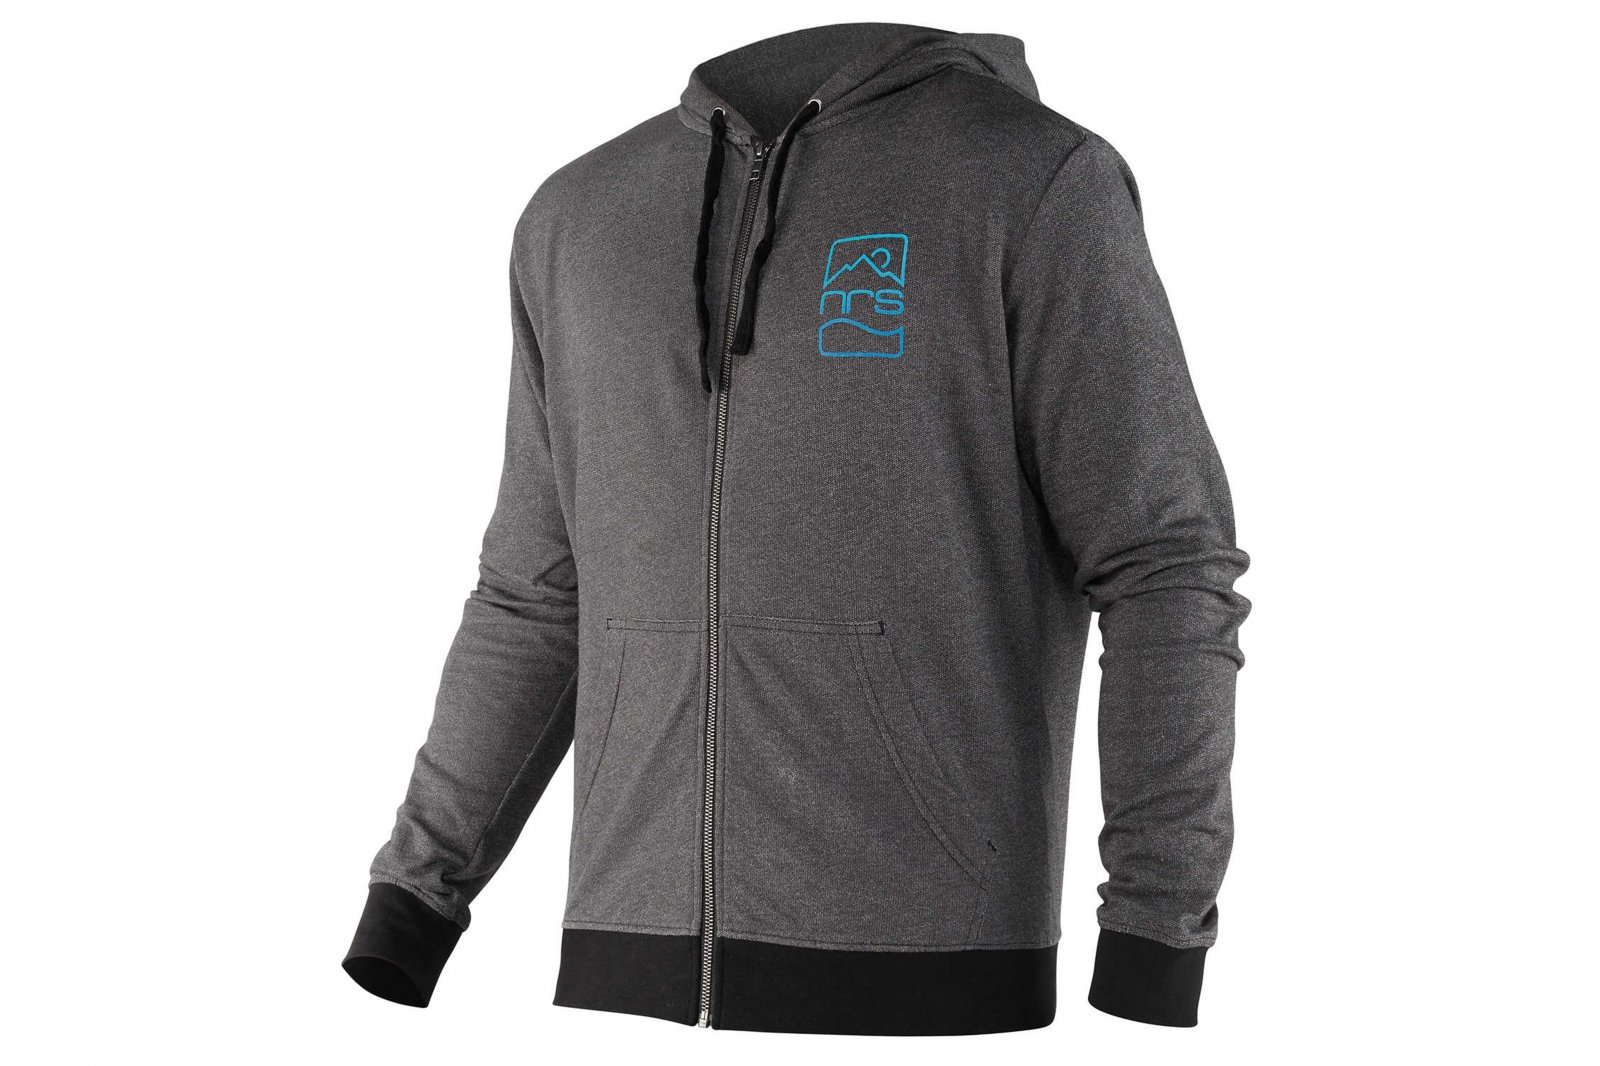 <img class='new_mark_img1' src='https://img.shop-pro.jp/img/new/icons5.gif' style='border:none;display:inline;margin:0px;padding:0px;width:auto;' />NRS Men's Badge Hoodie Charcoal